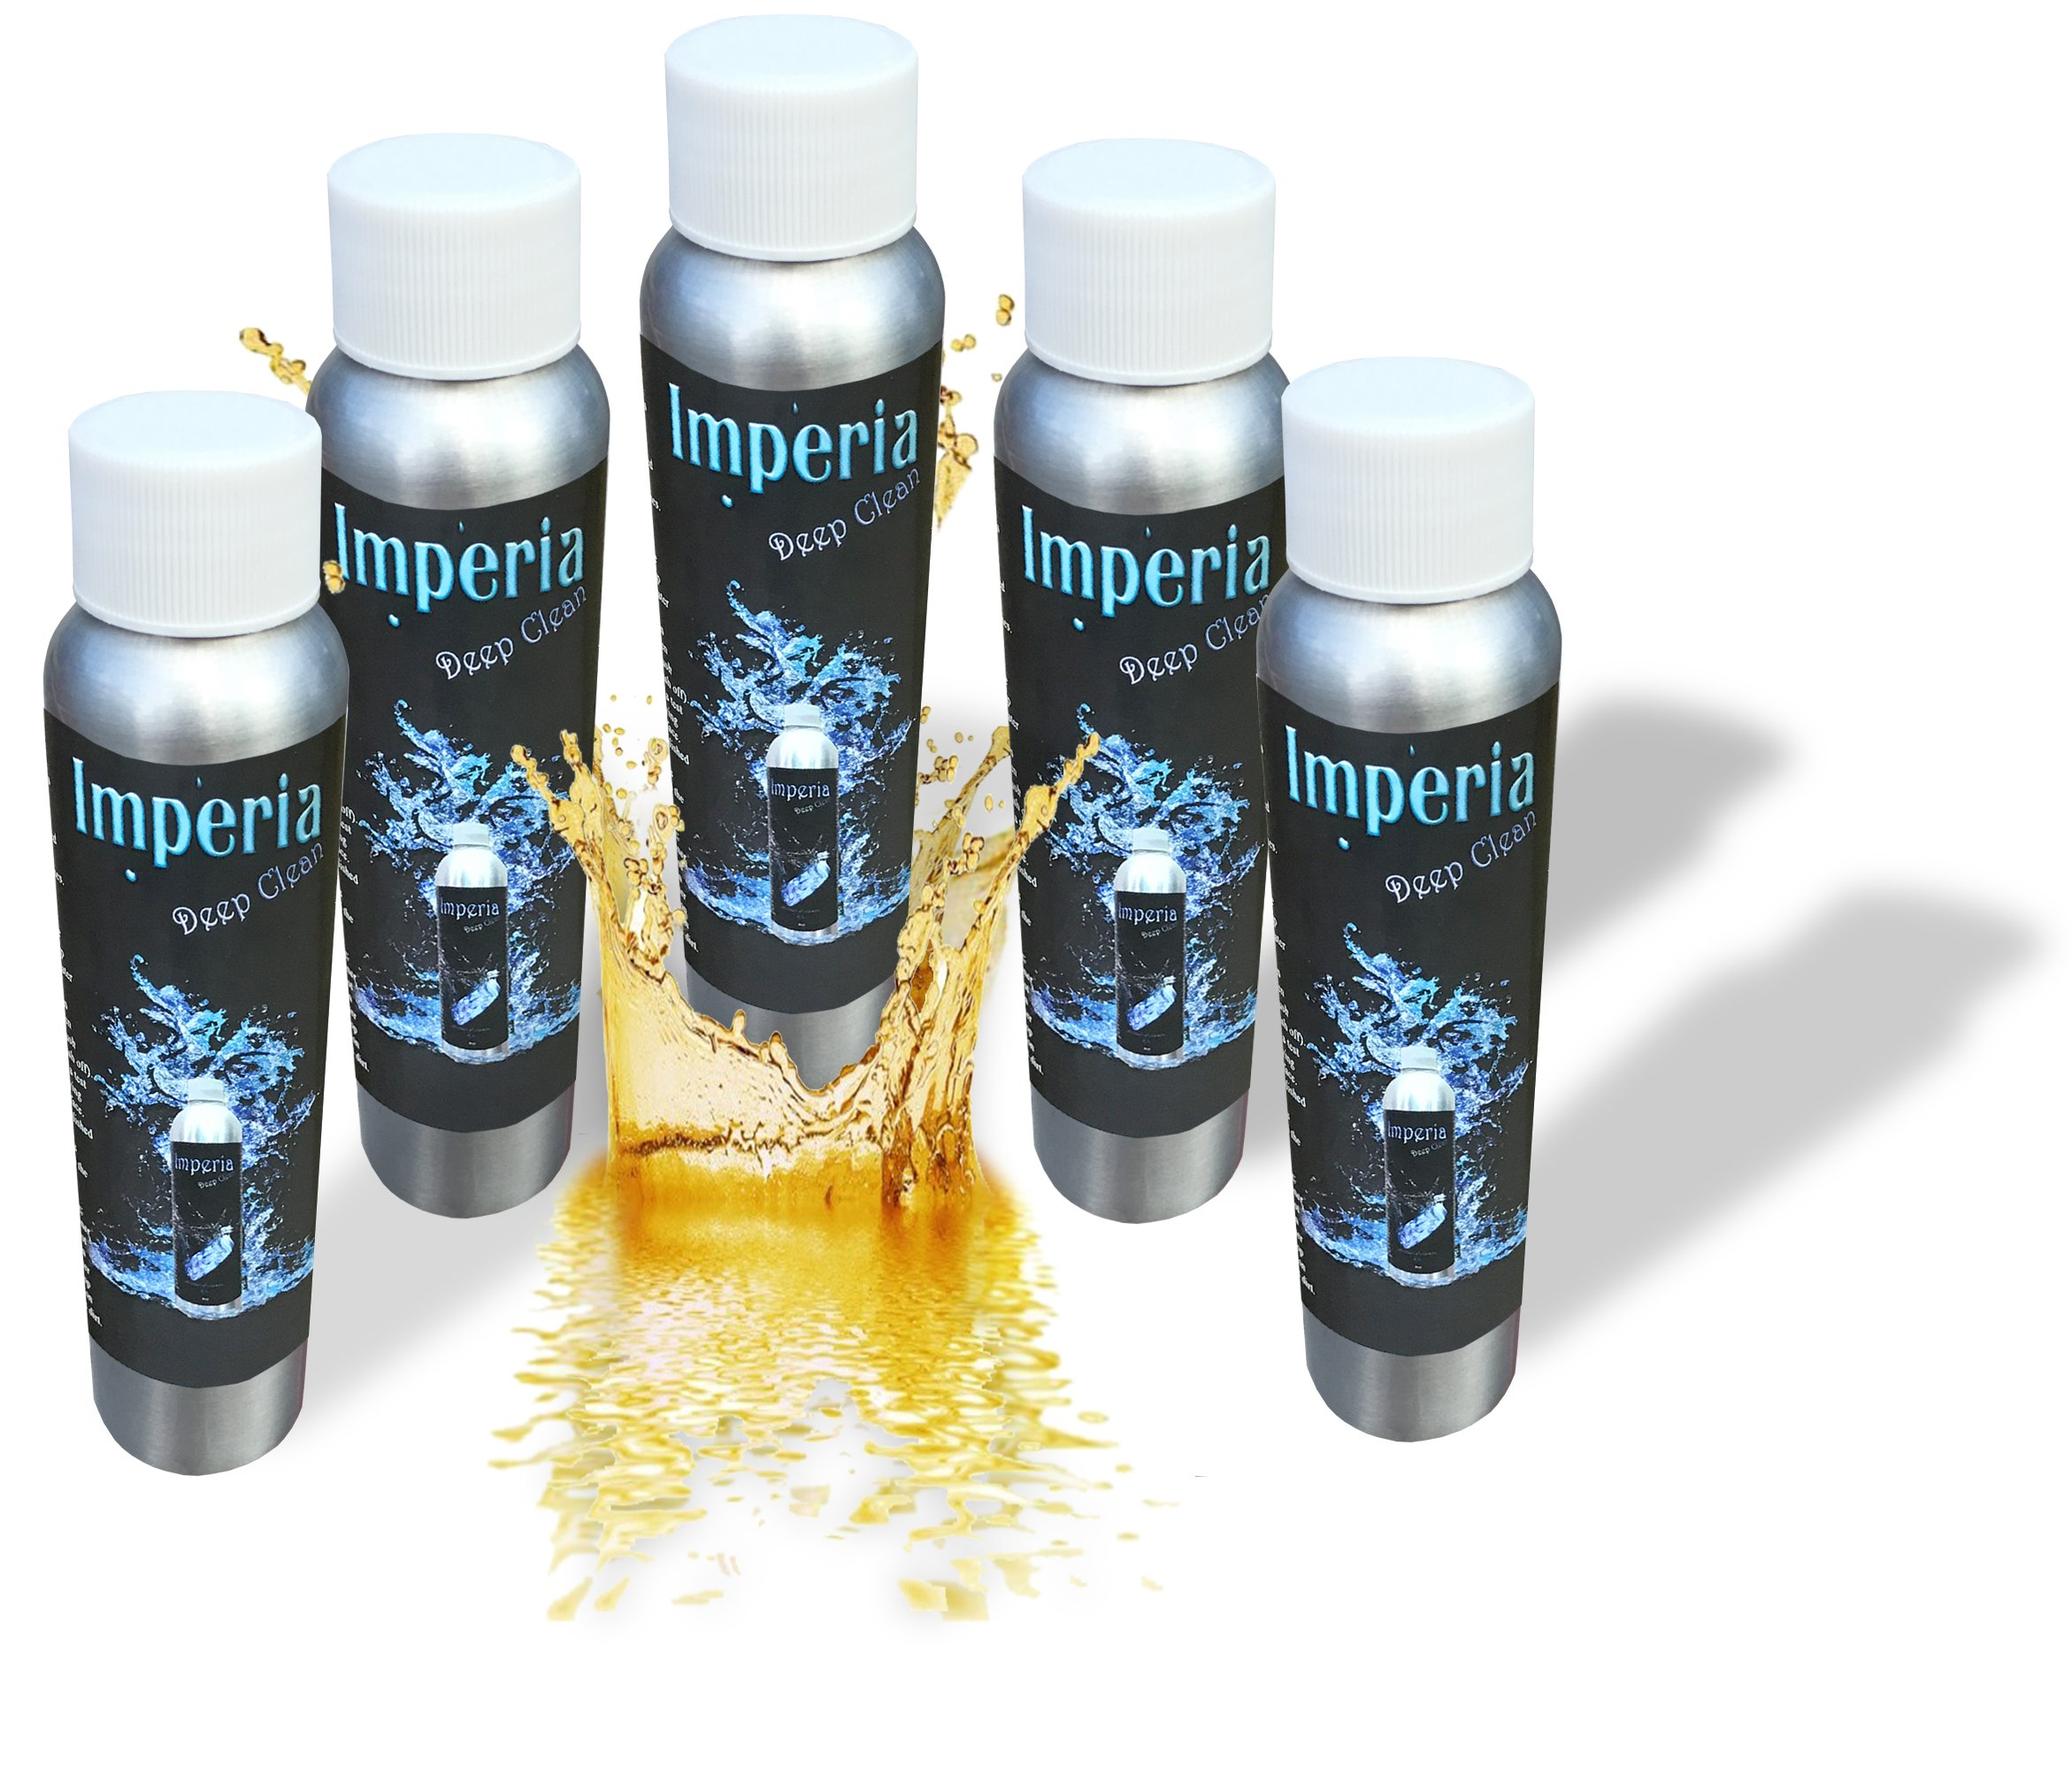 photo credit: Imperia Deep Clean - From © pFOkUS - 10 Minutes for mom